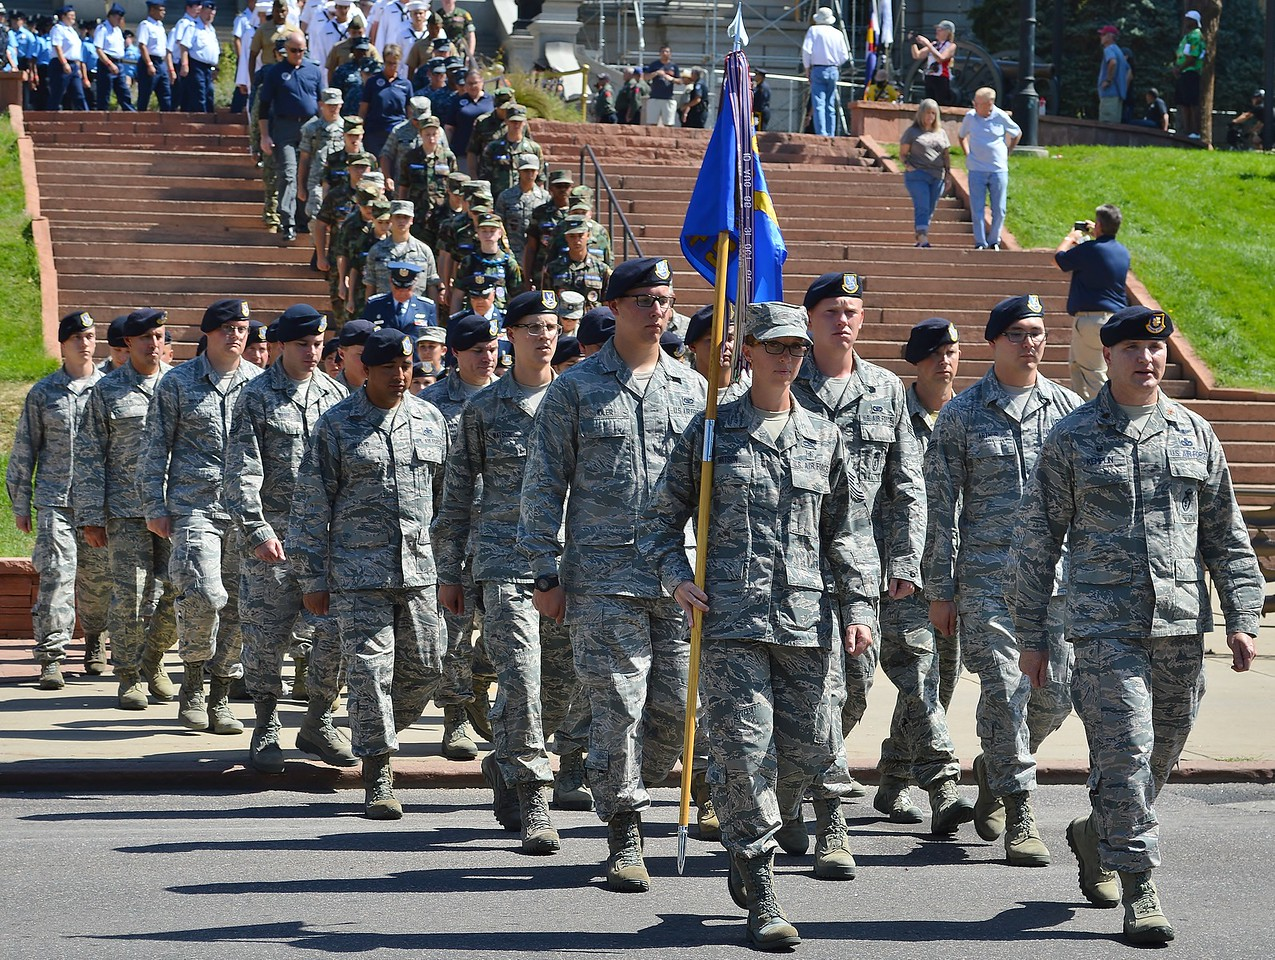 Members of US military marching down stairs at Colorado State Capitol building at 9/11 15th Anniversary commemoration.